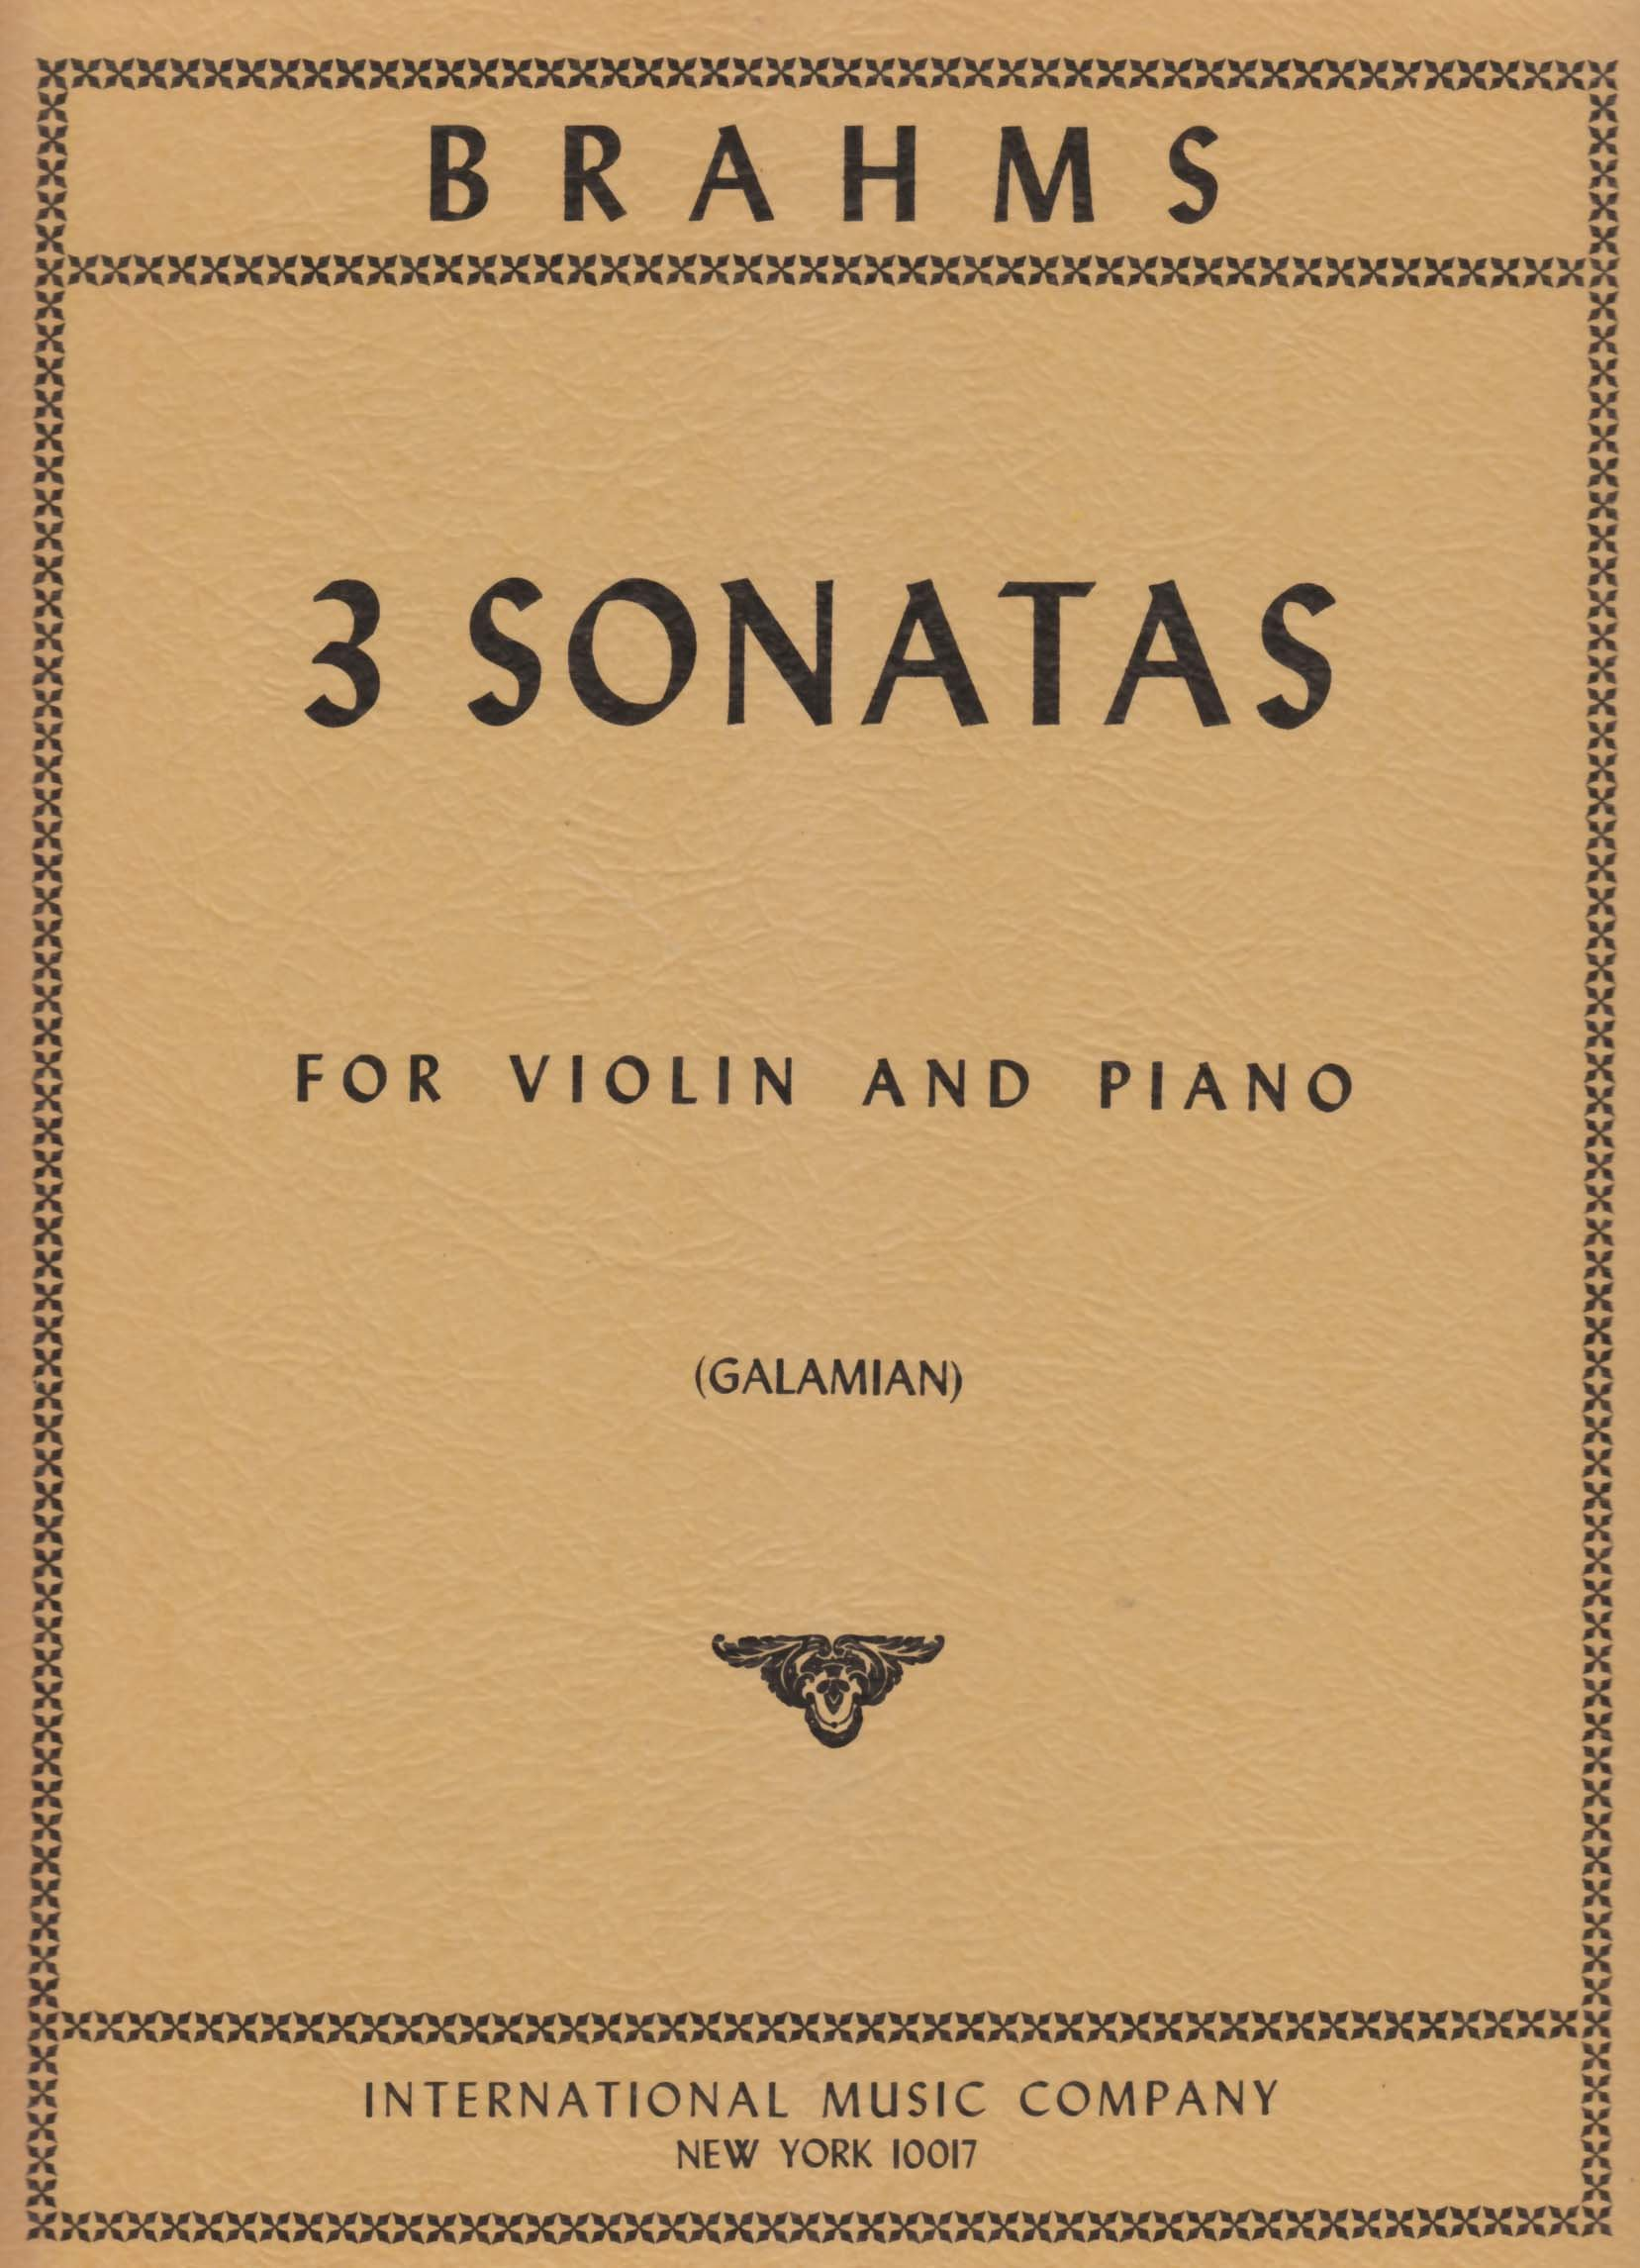 brahms-3-sonatas-for-violin-and-piano-galamian